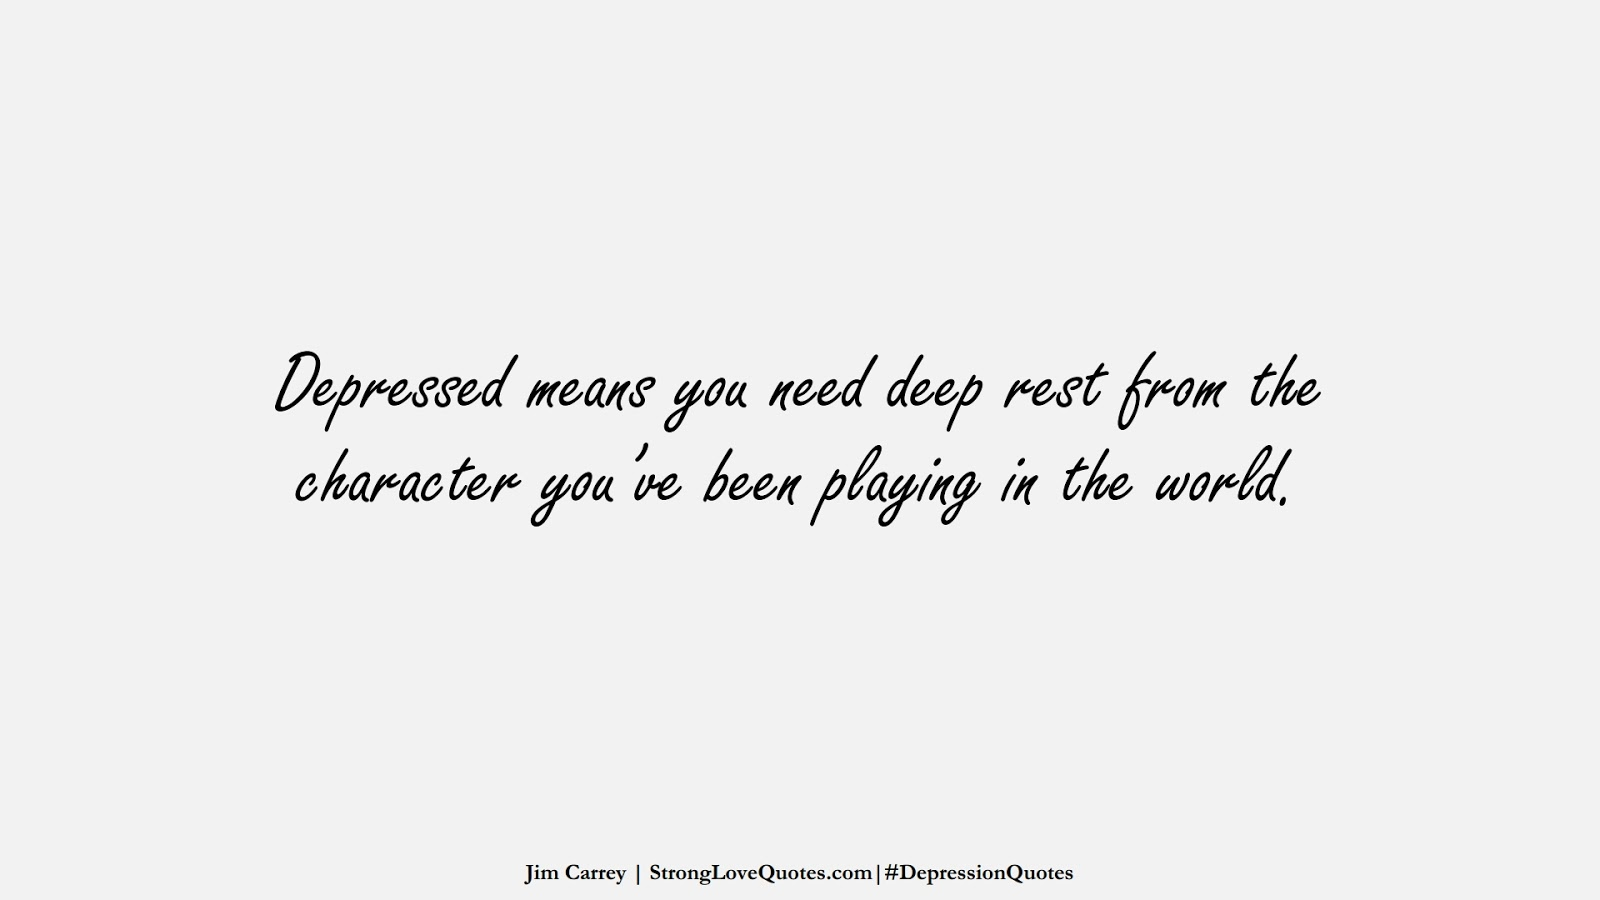 Depressed means you need deep rest from the character you've been playing in the world. (Jim Carrey);  #DepressionQuotes